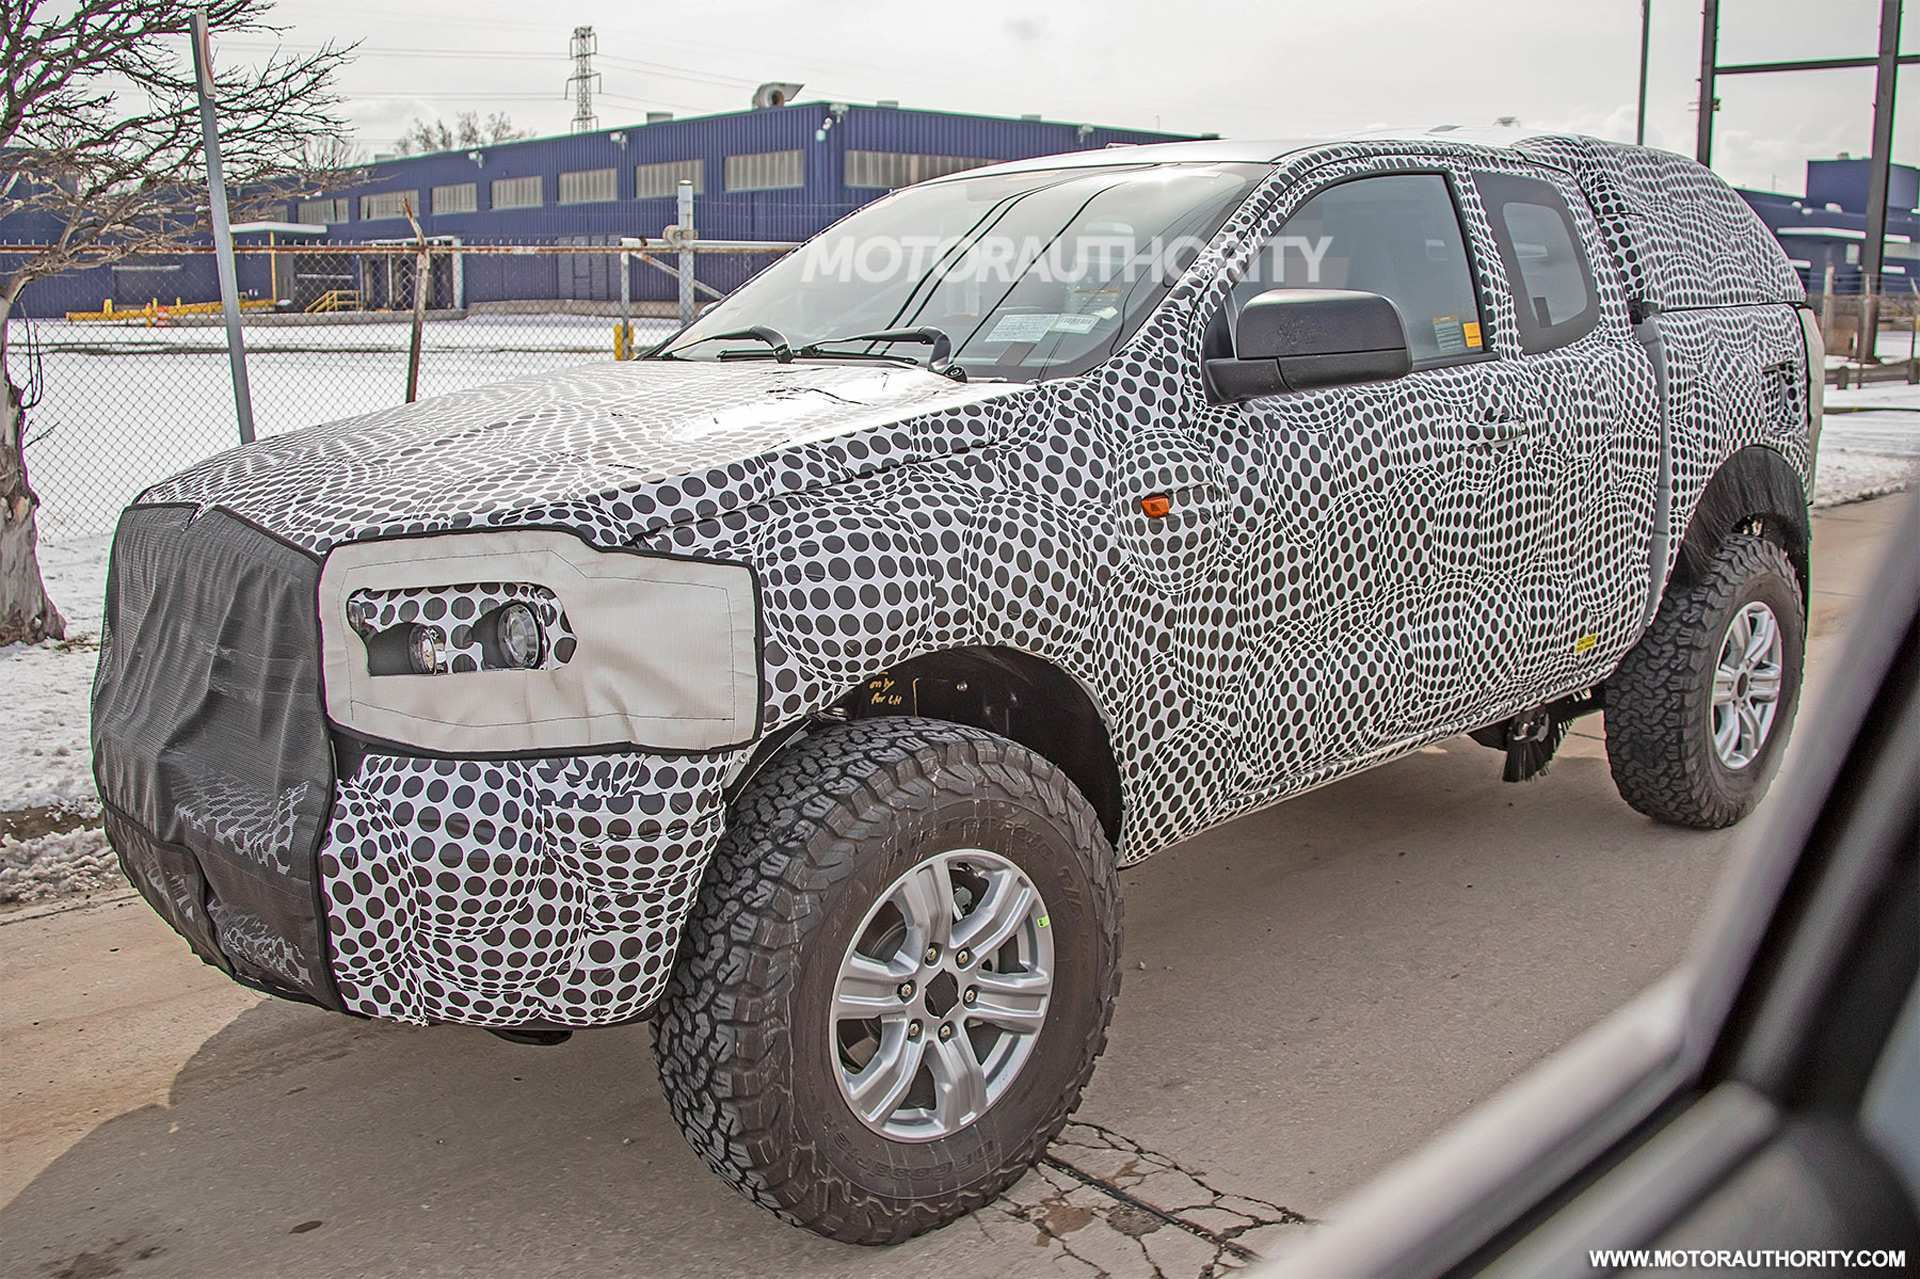 39 New 2020 Ford Bronco Leaked Picture by 2020 Ford Bronco Leaked